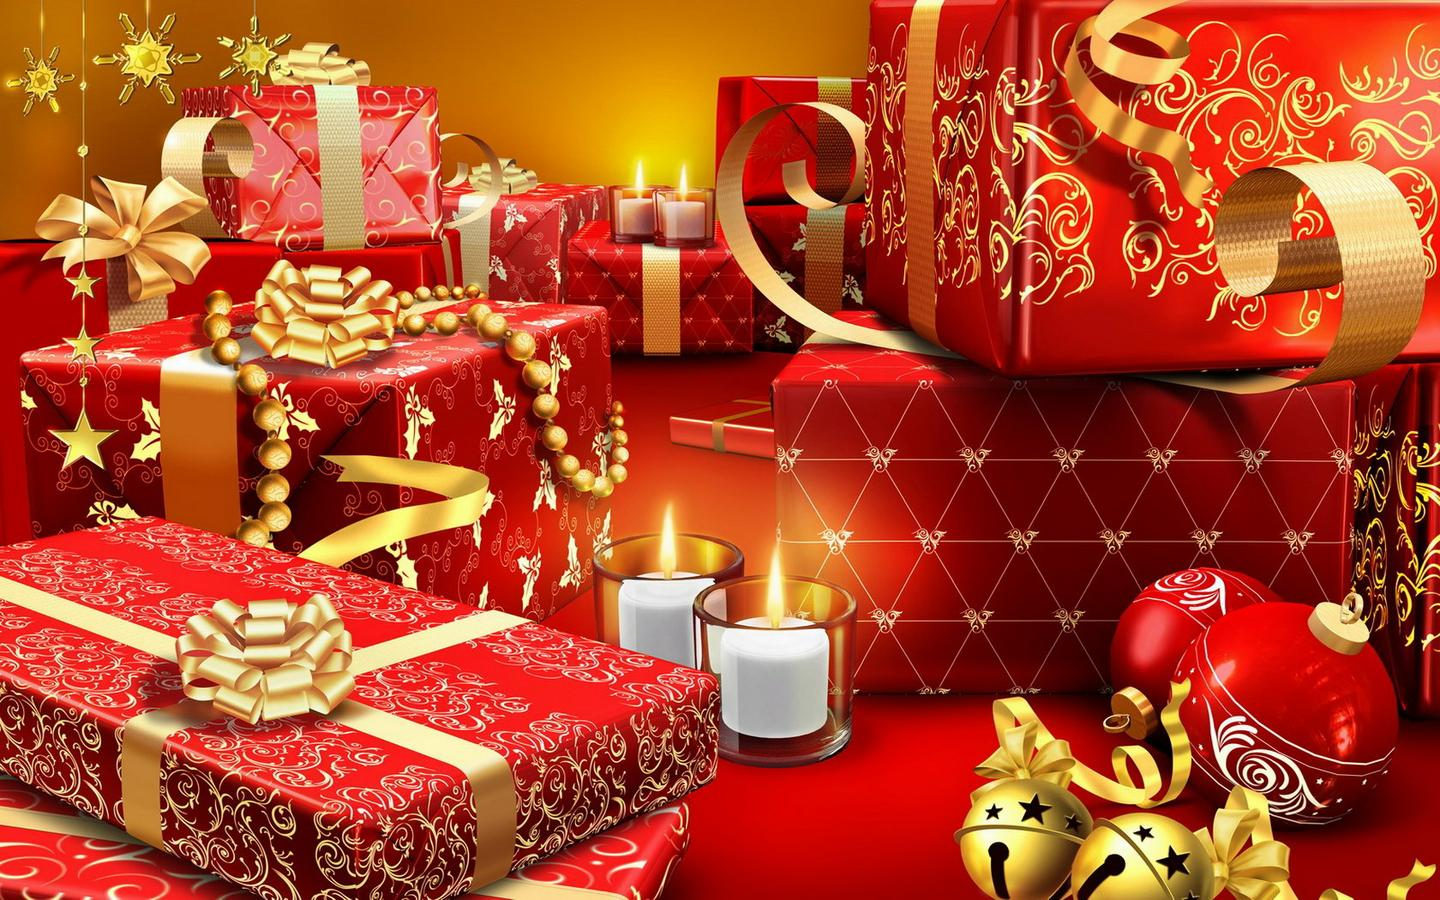 Merry Christmas Holiday 2014 Background